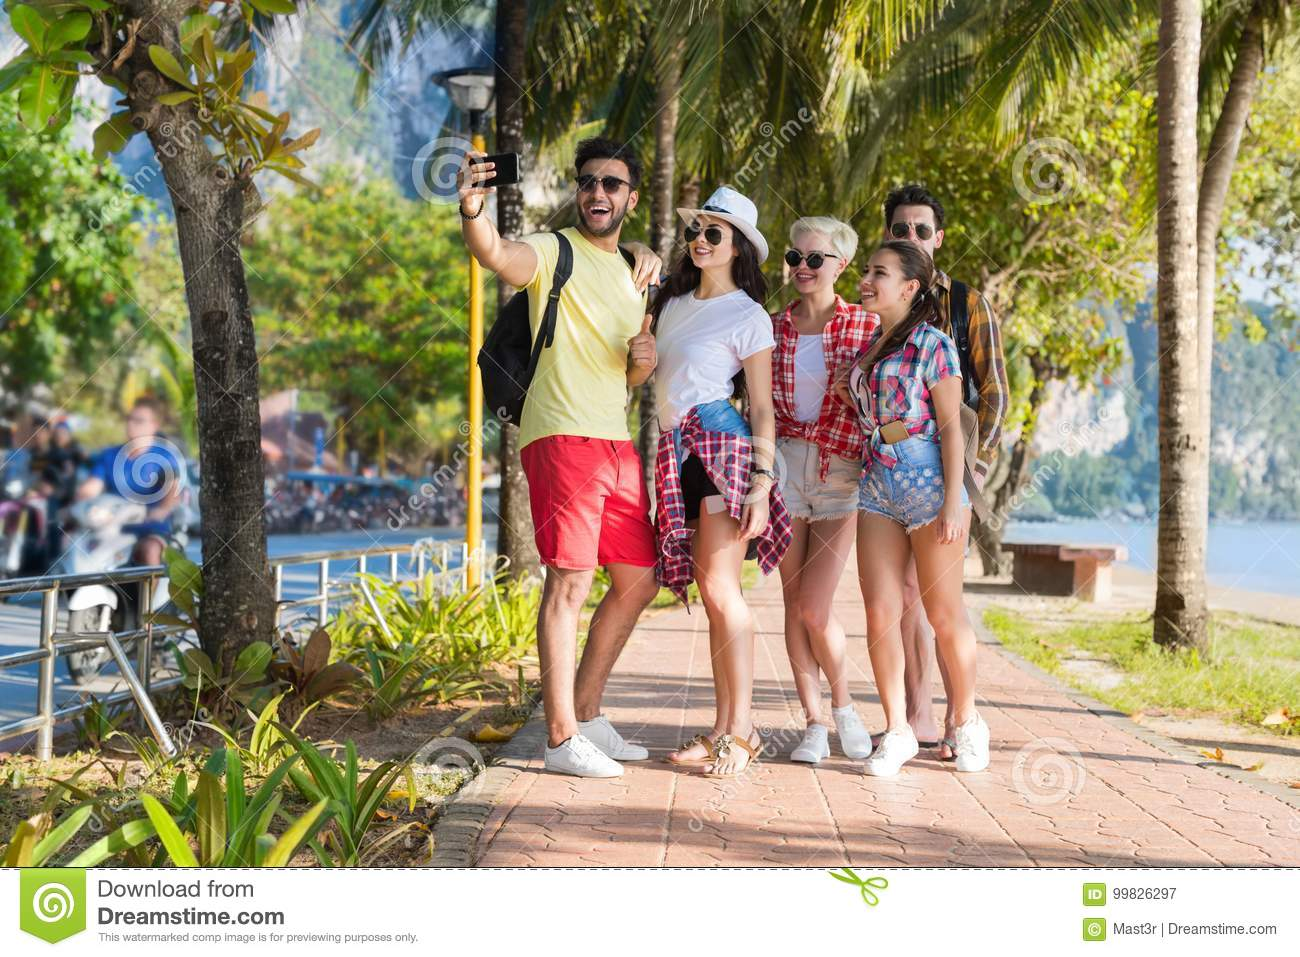 Young People Group On Beach Taking Selfie Photo On Cell Smart Phone Summer Vacation, Happy Smiling Friends Sea Holiday